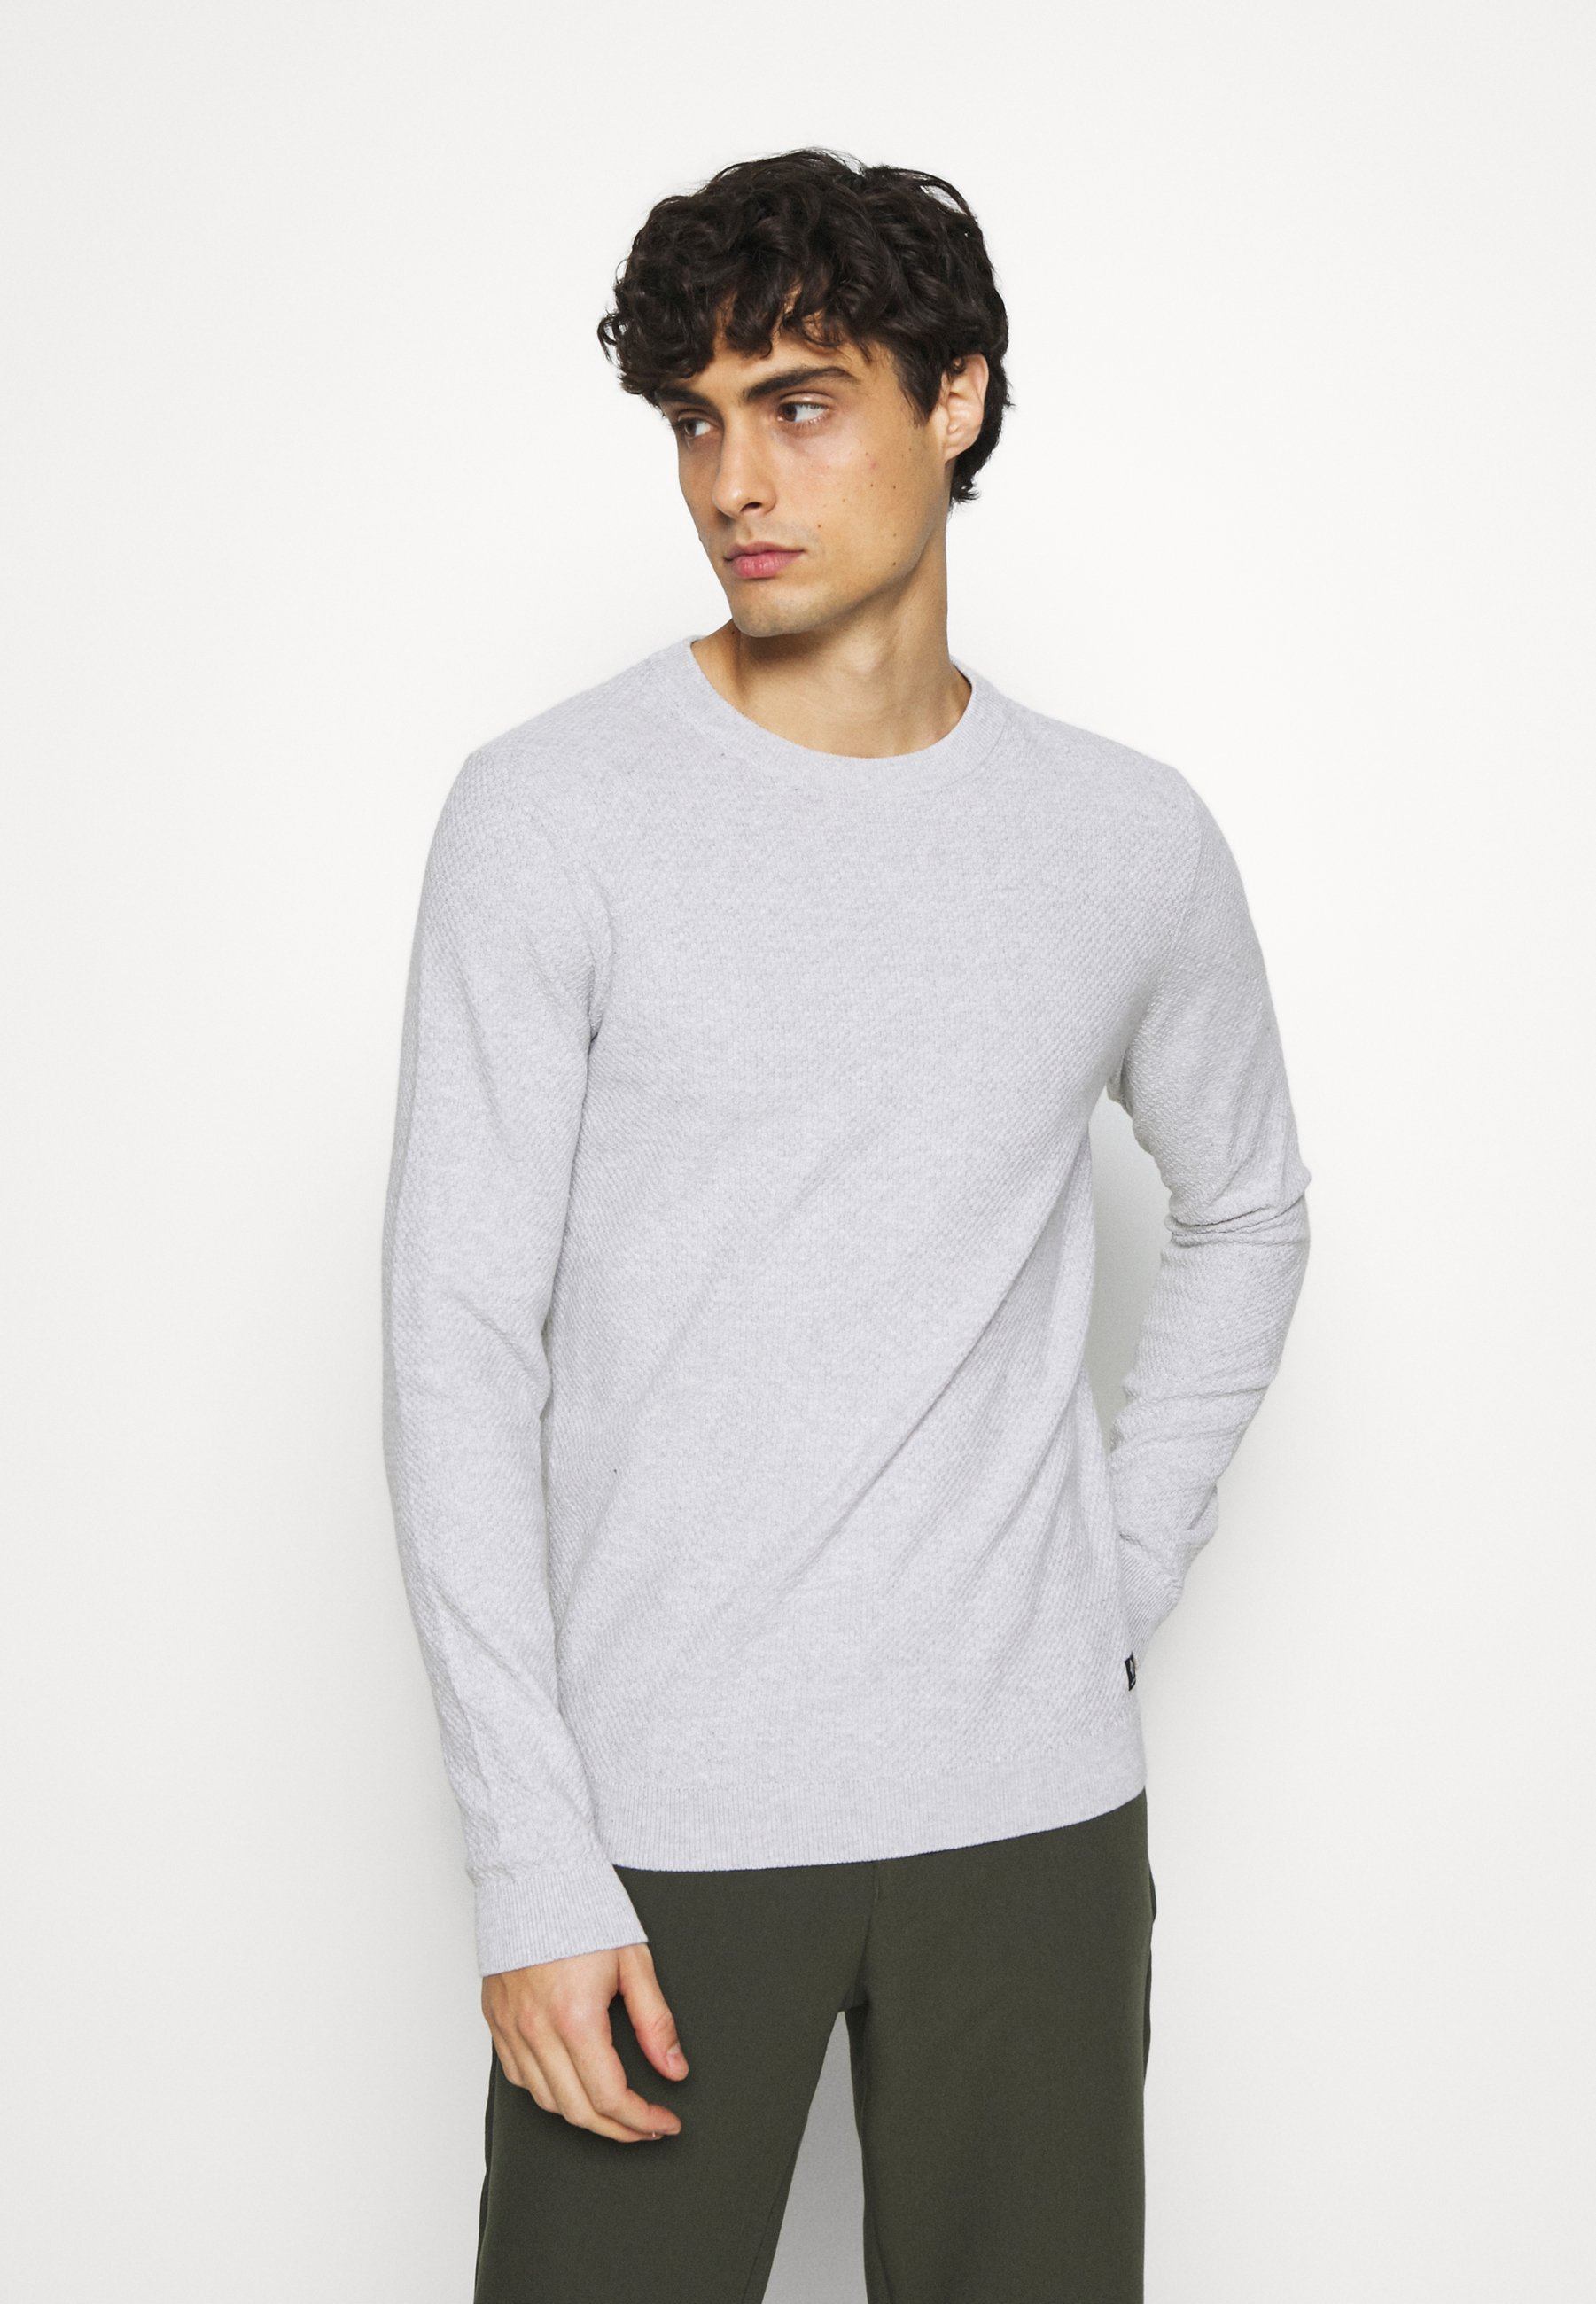 Homme BRICK WALL STRUCTURE CREWNECK - Pullover - light stone grey